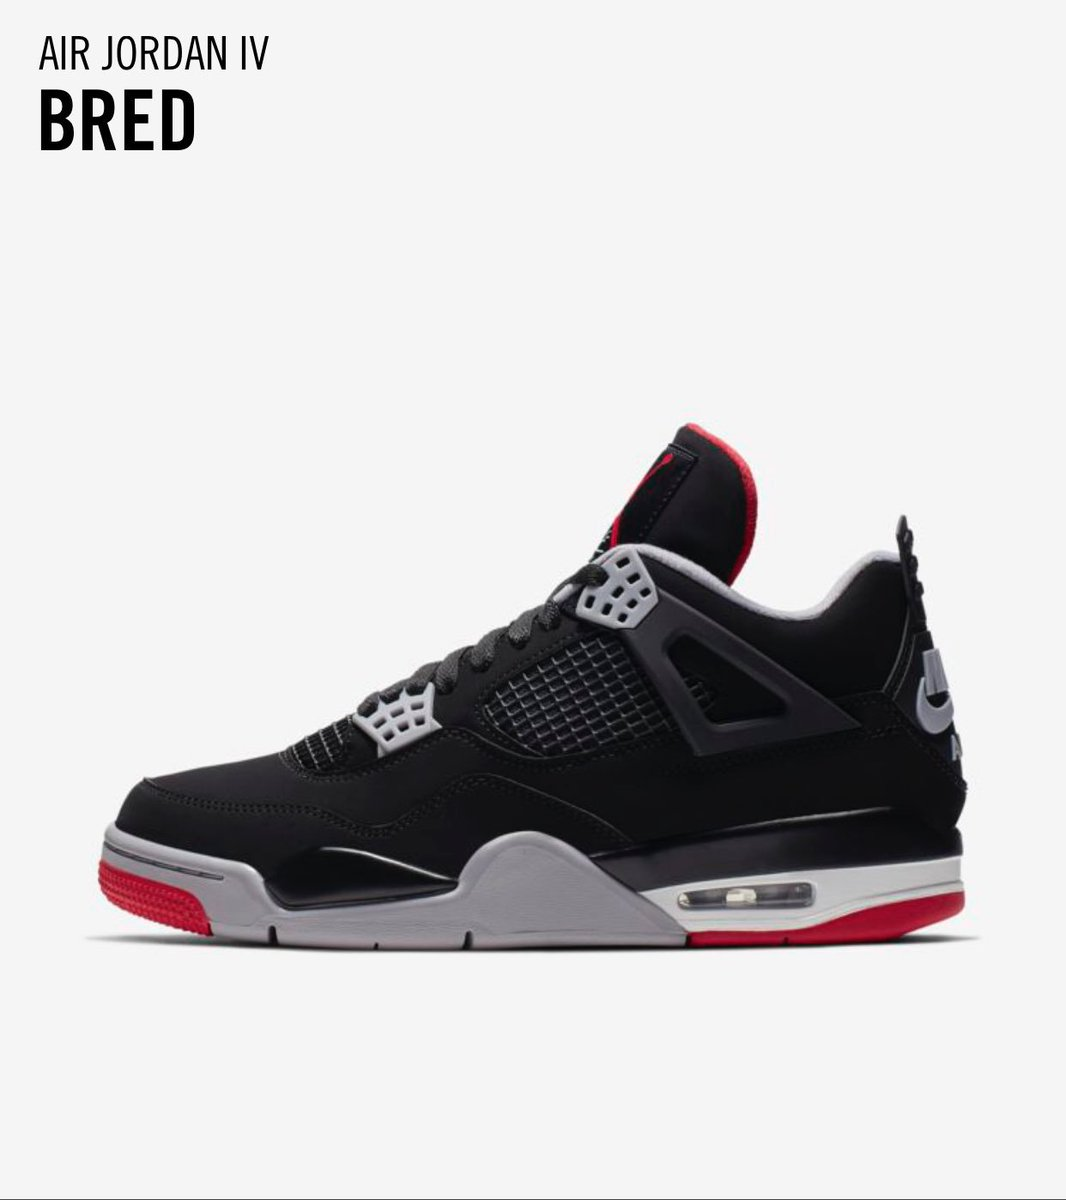 Adam's photo on SNKRS